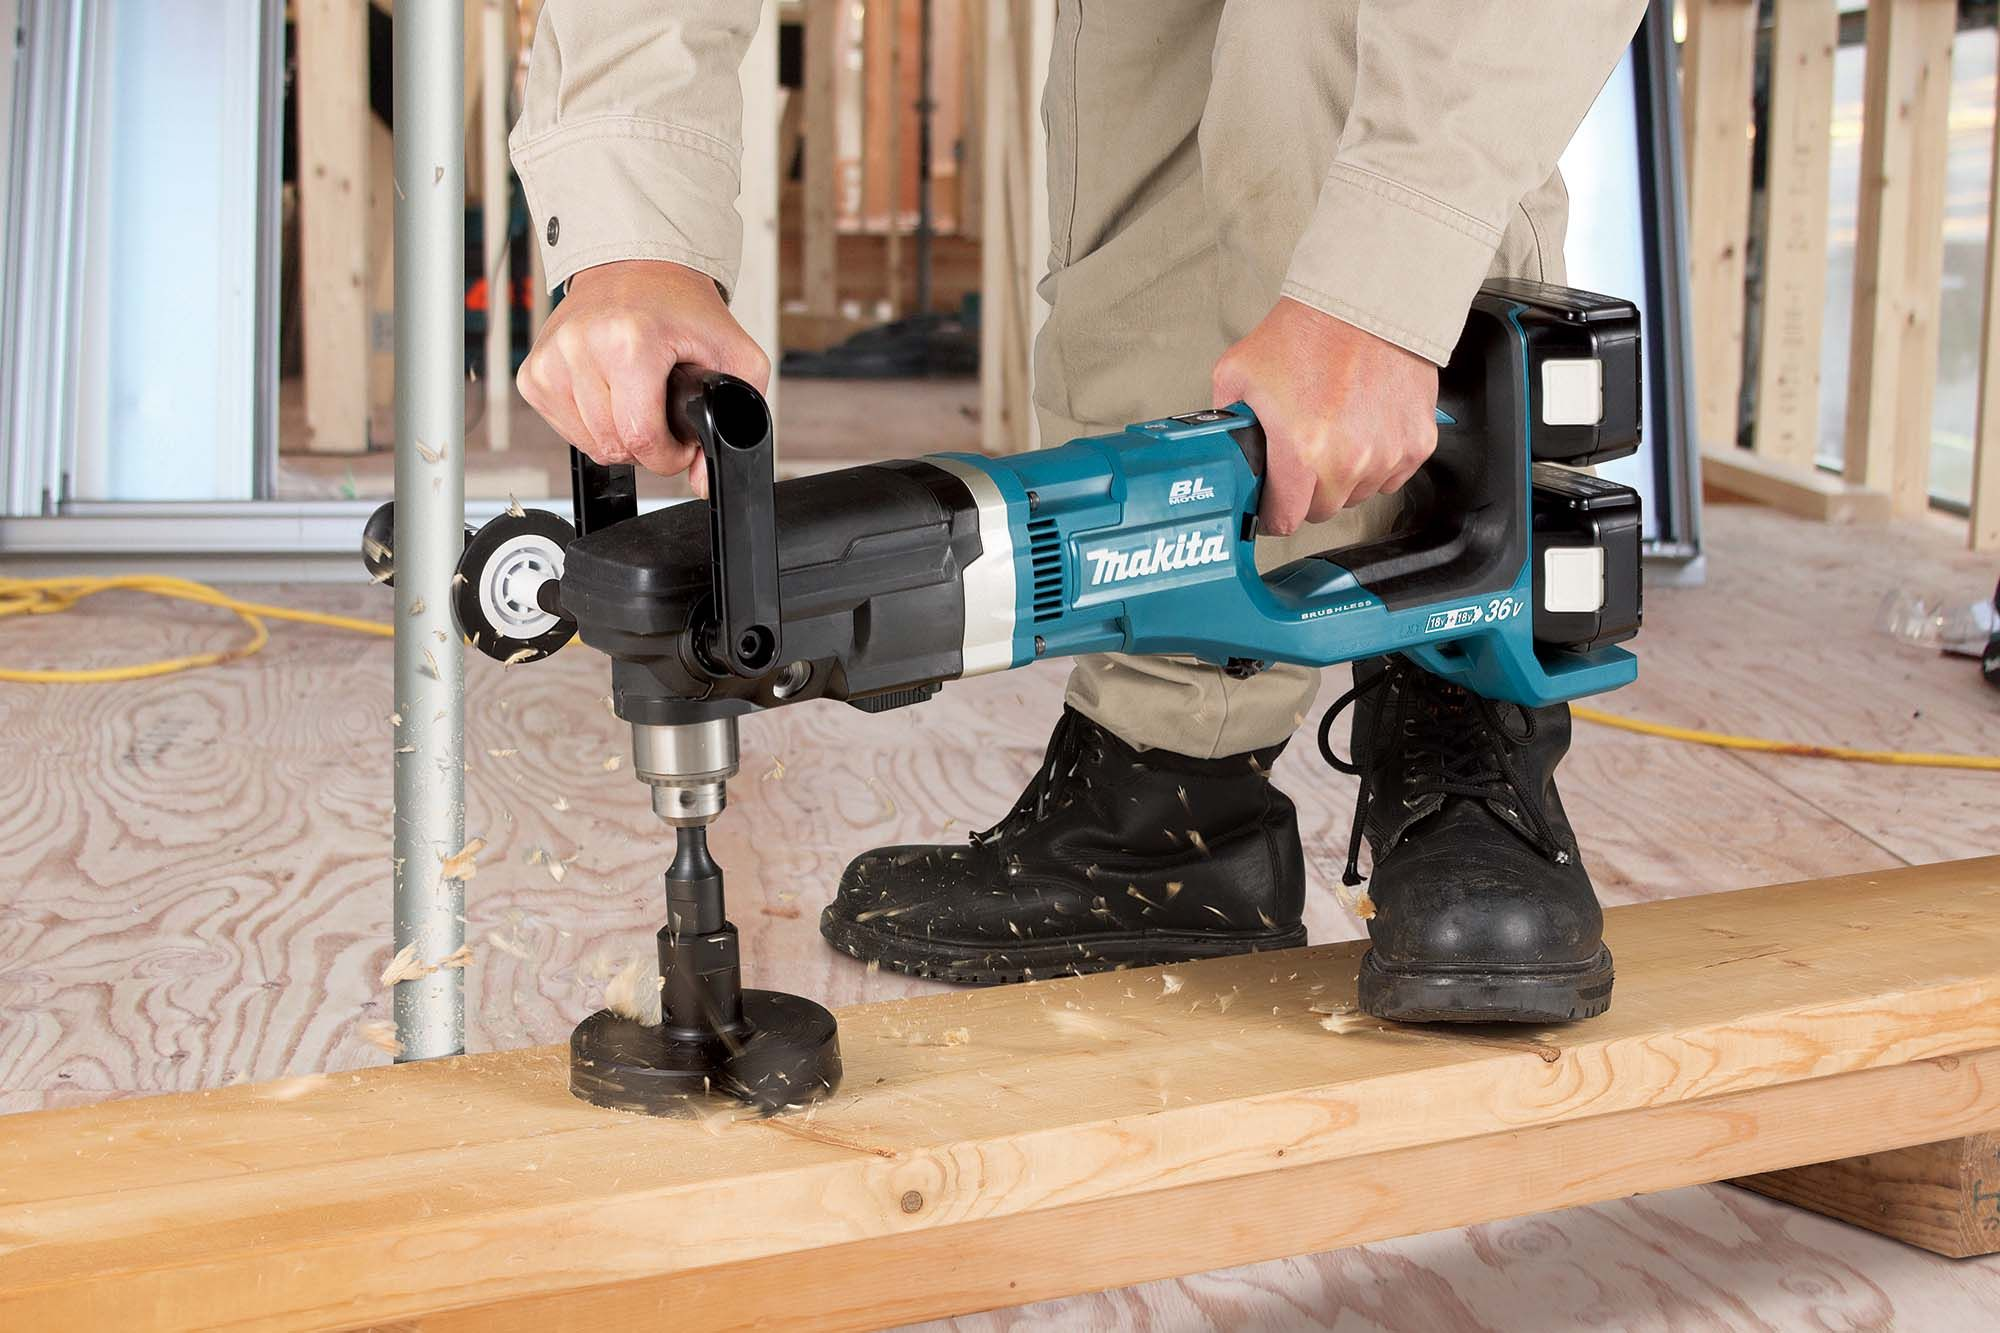 Makita S Twin 18v Lxt Angle Drill Exceeds Mains Delivery And Mak